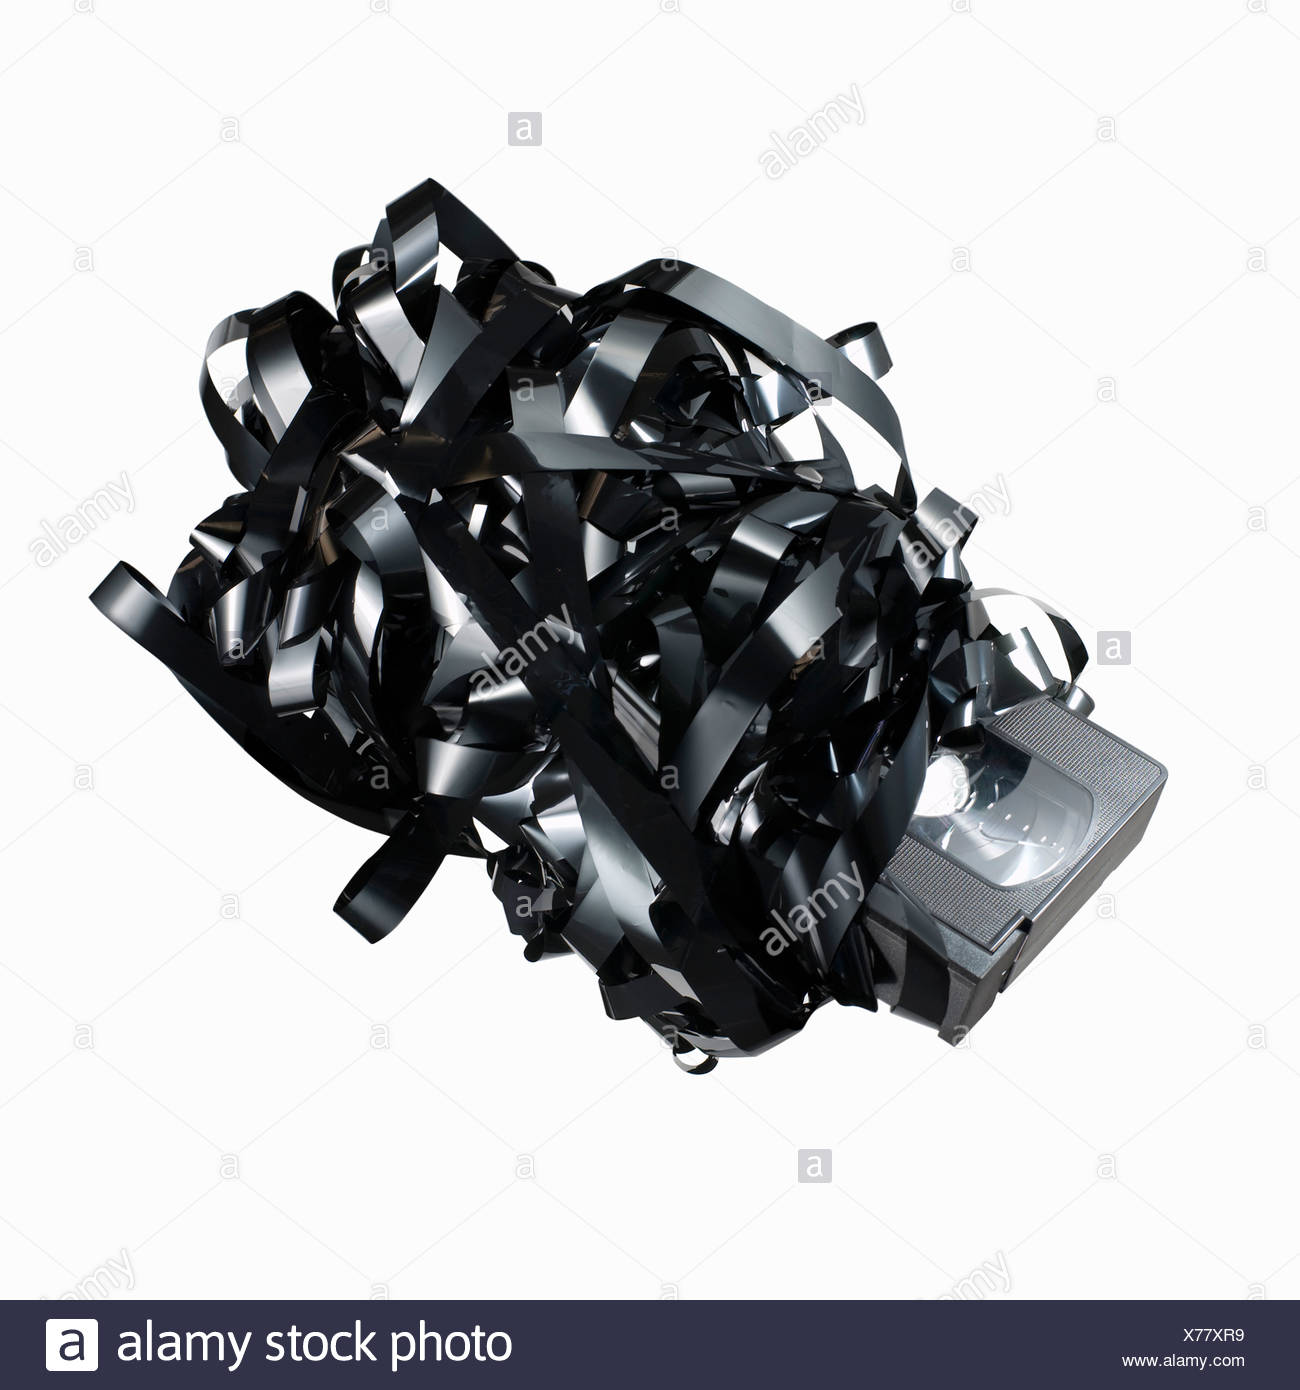 Tangled tape with VHS cassette - Stock Image